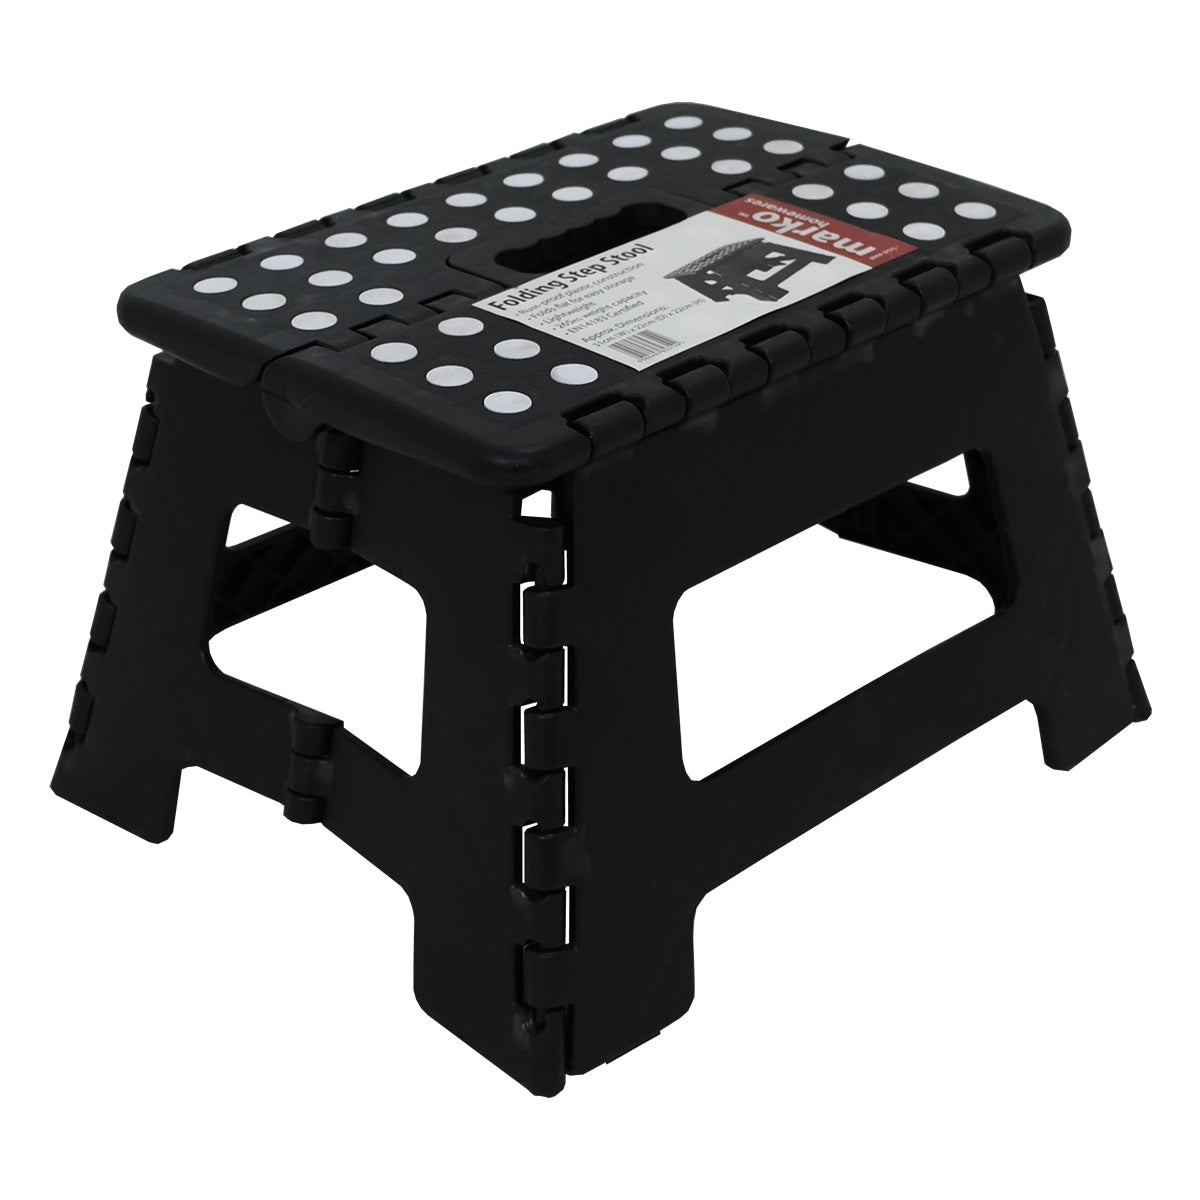 Miraculous Single Folding Step Stool Pabps2019 Chair Design Images Pabps2019Com